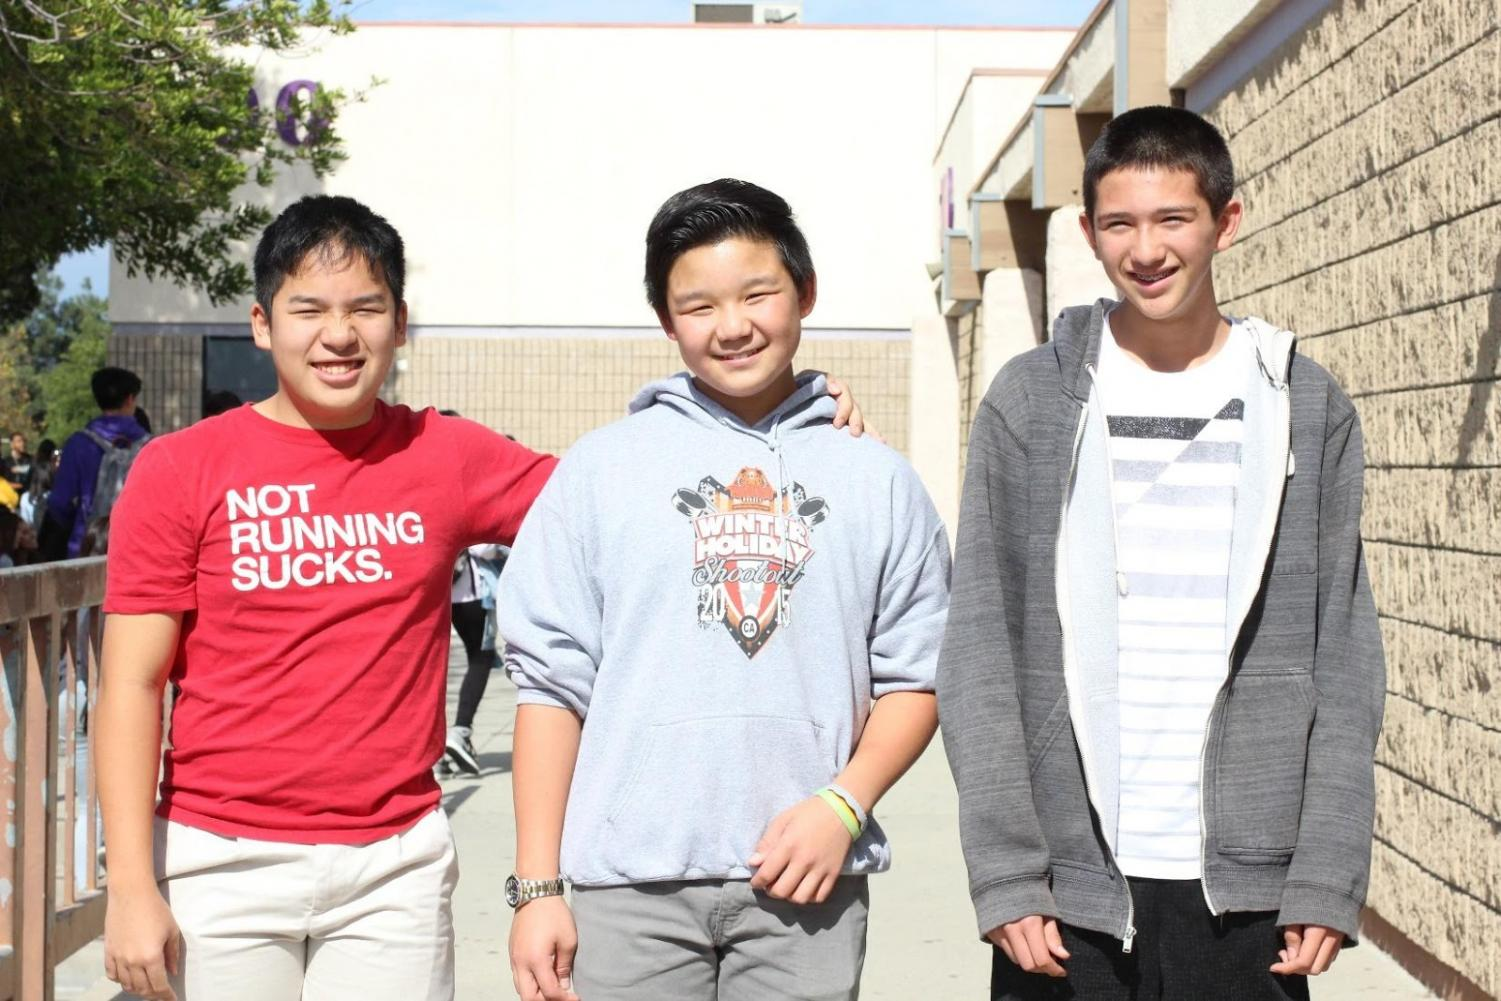 Junior Matthew Ho, sophomore Nolton Burns and freshman Aidan Yim all played in the same recreational program before joining Bishop Amat's team.